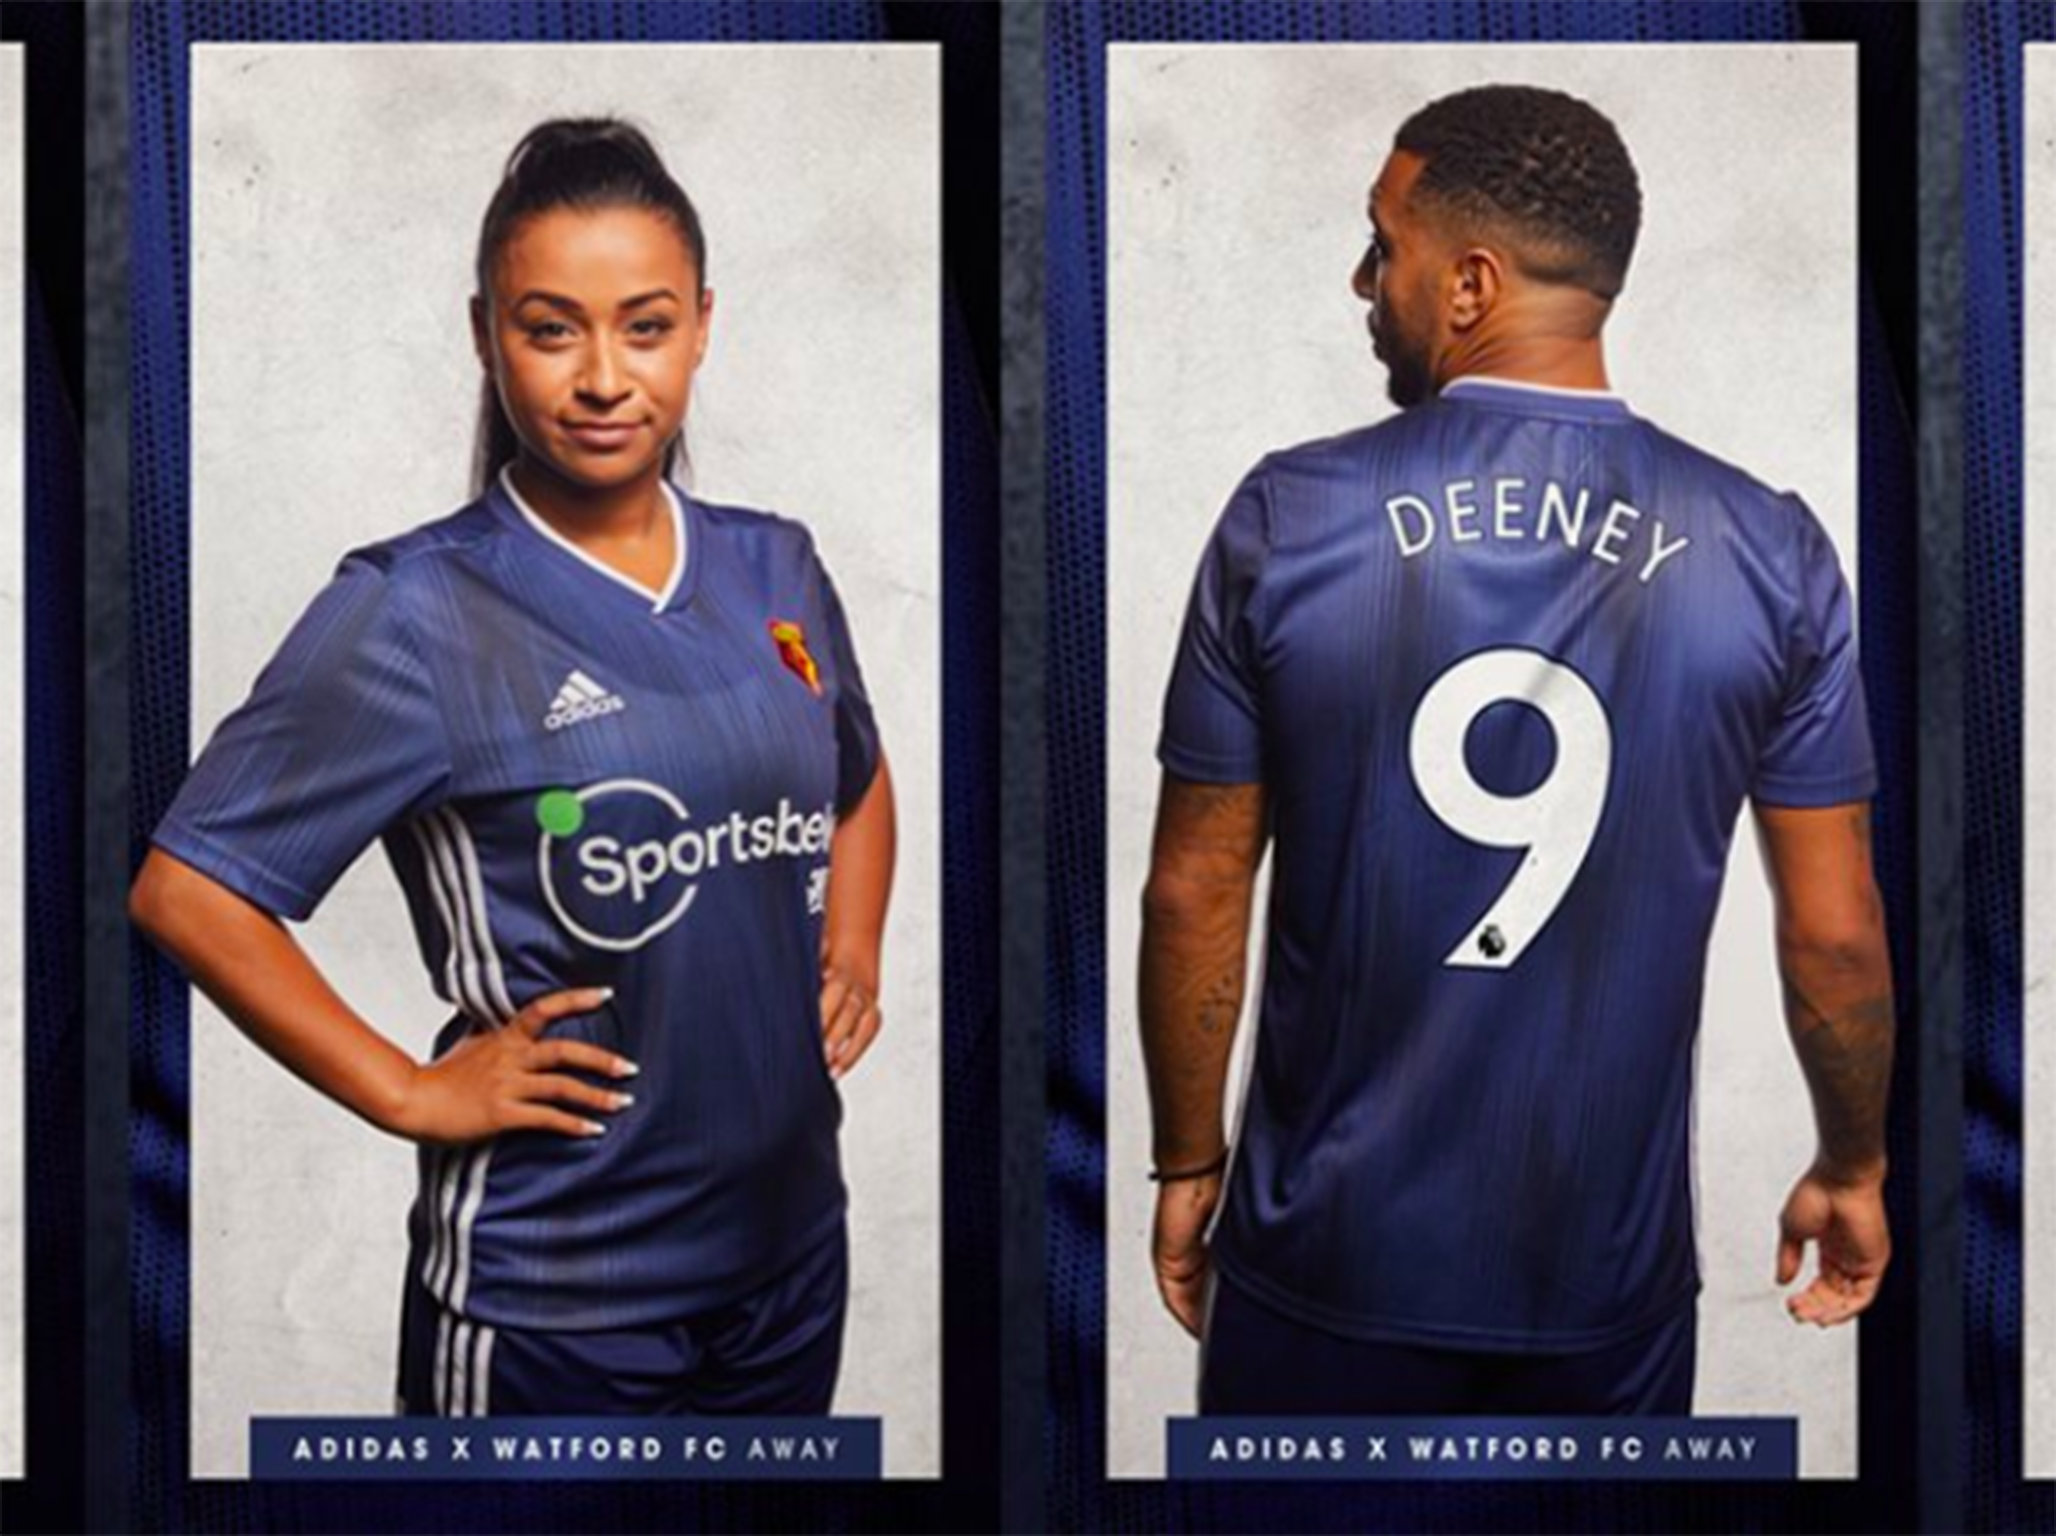 Premier League 201920 kits: Ranked and rated – including